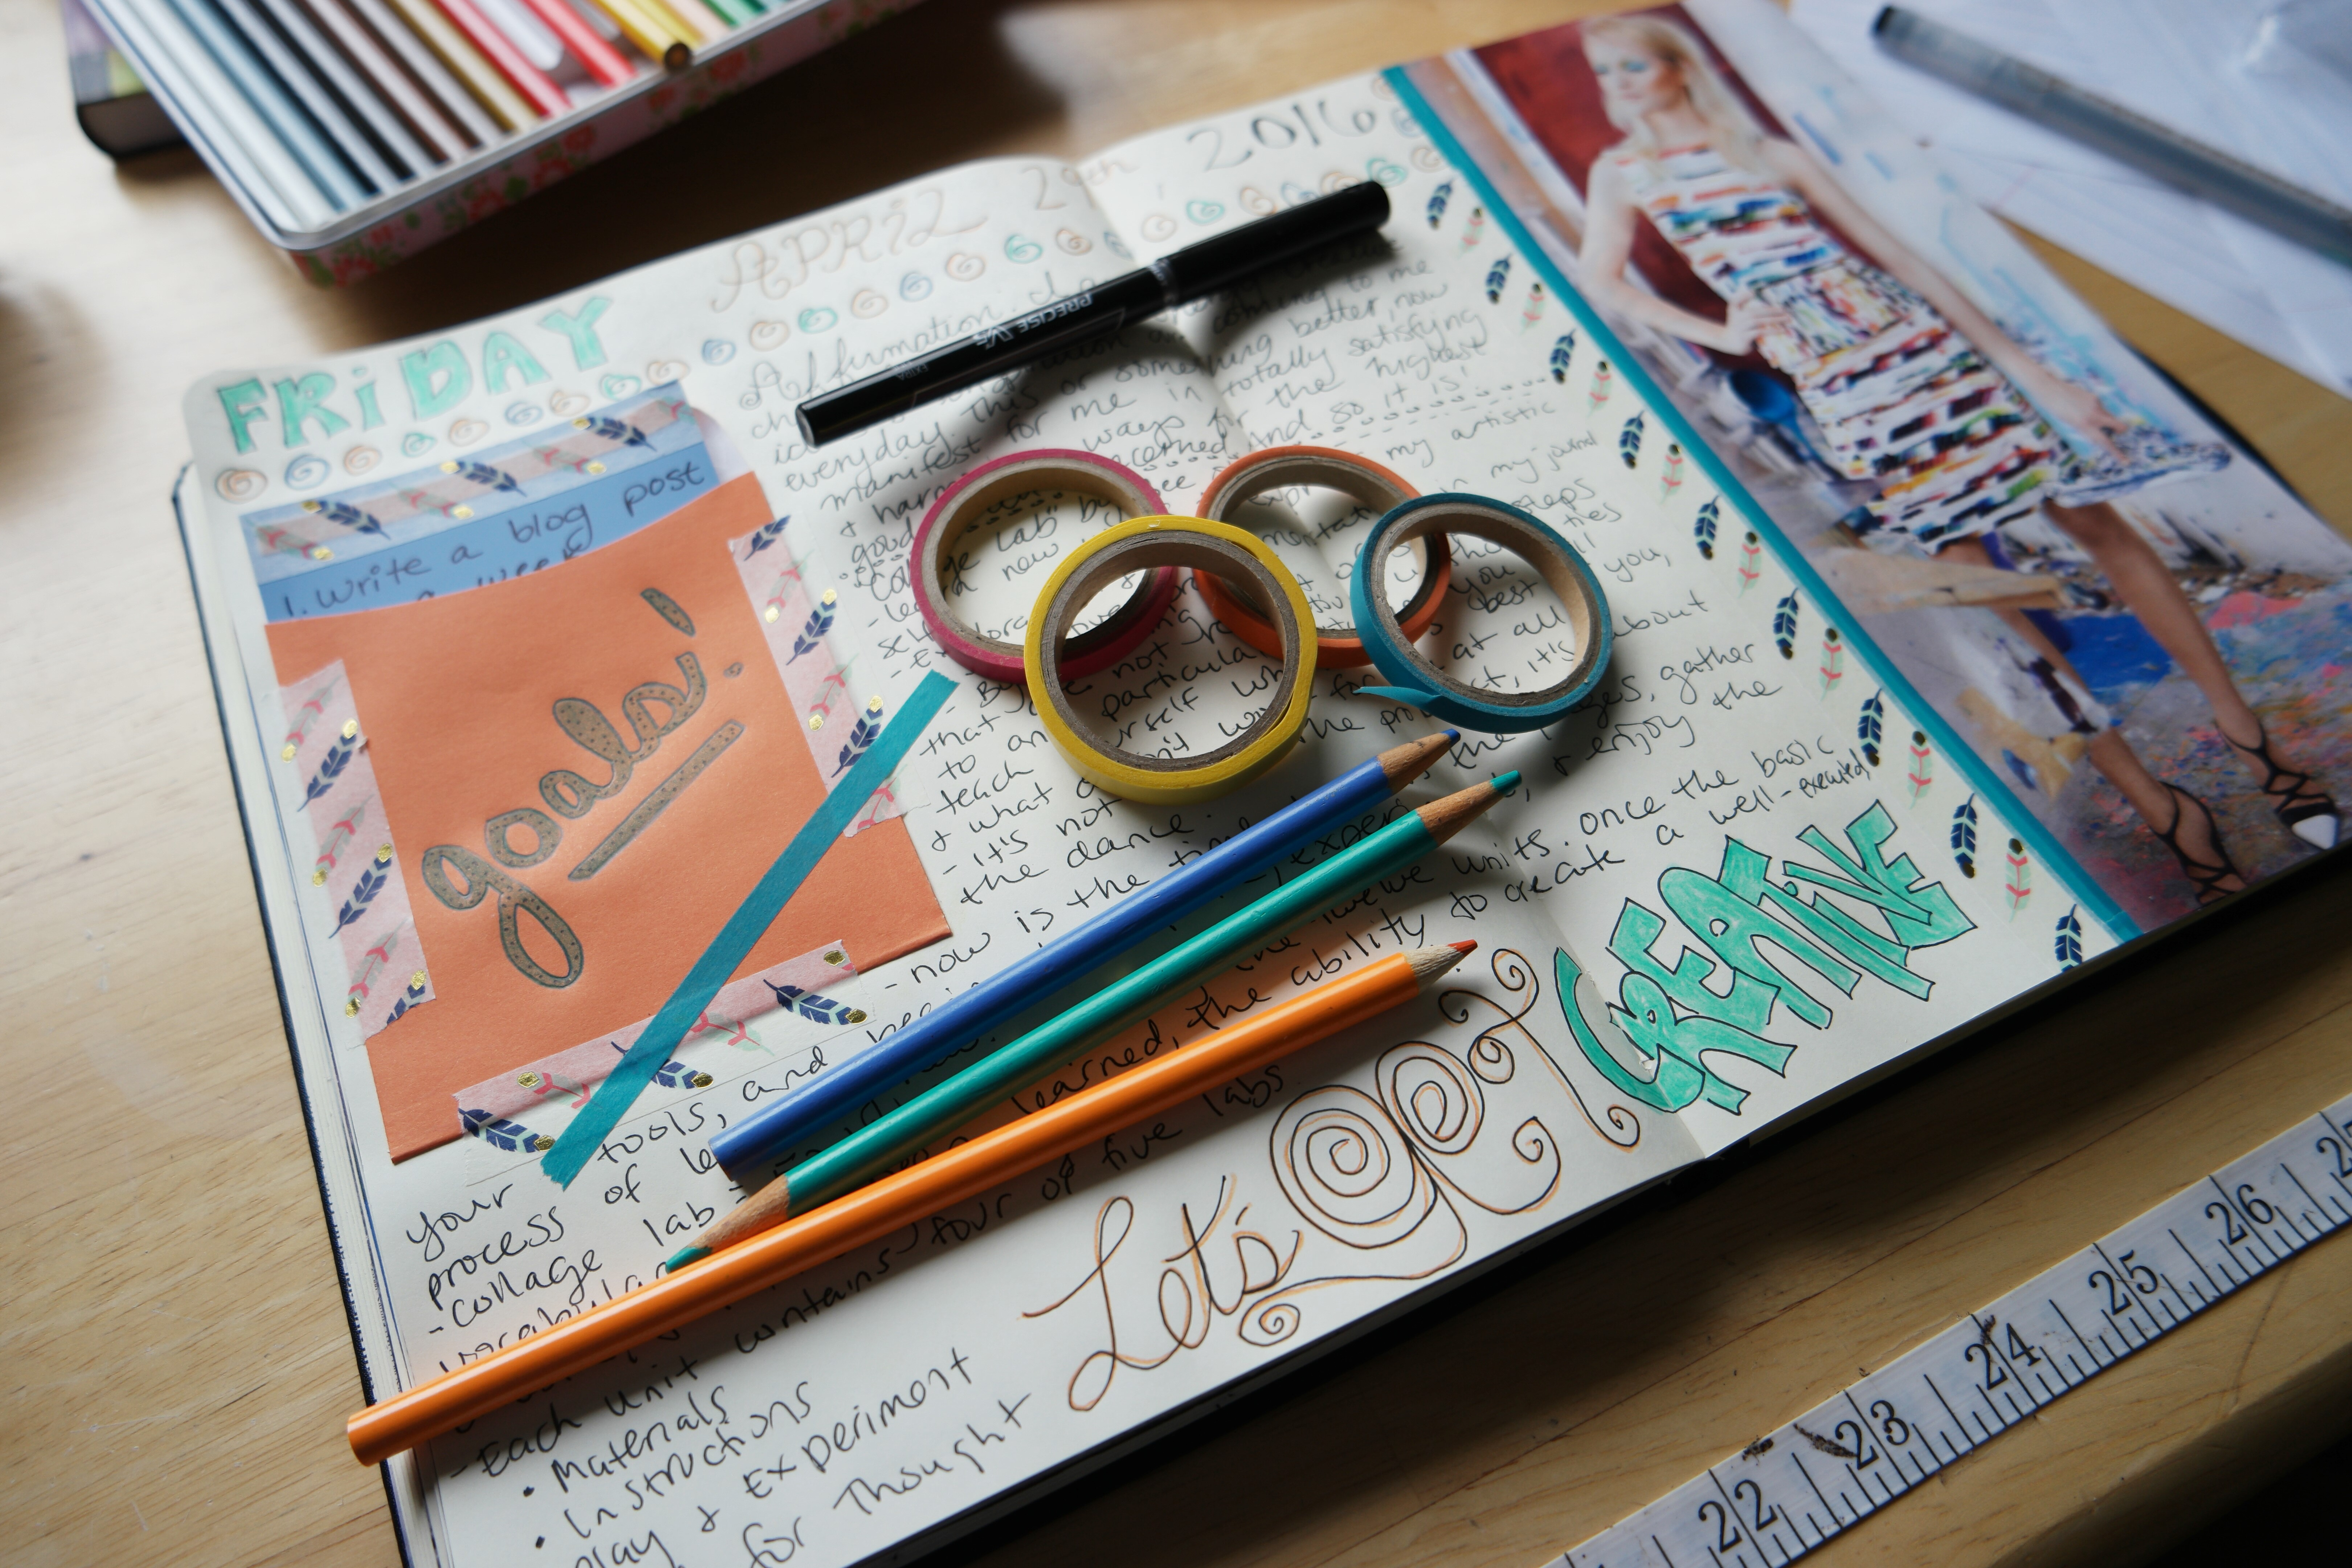 Creative goal-setting in my visual journaling. Writing affirmations.